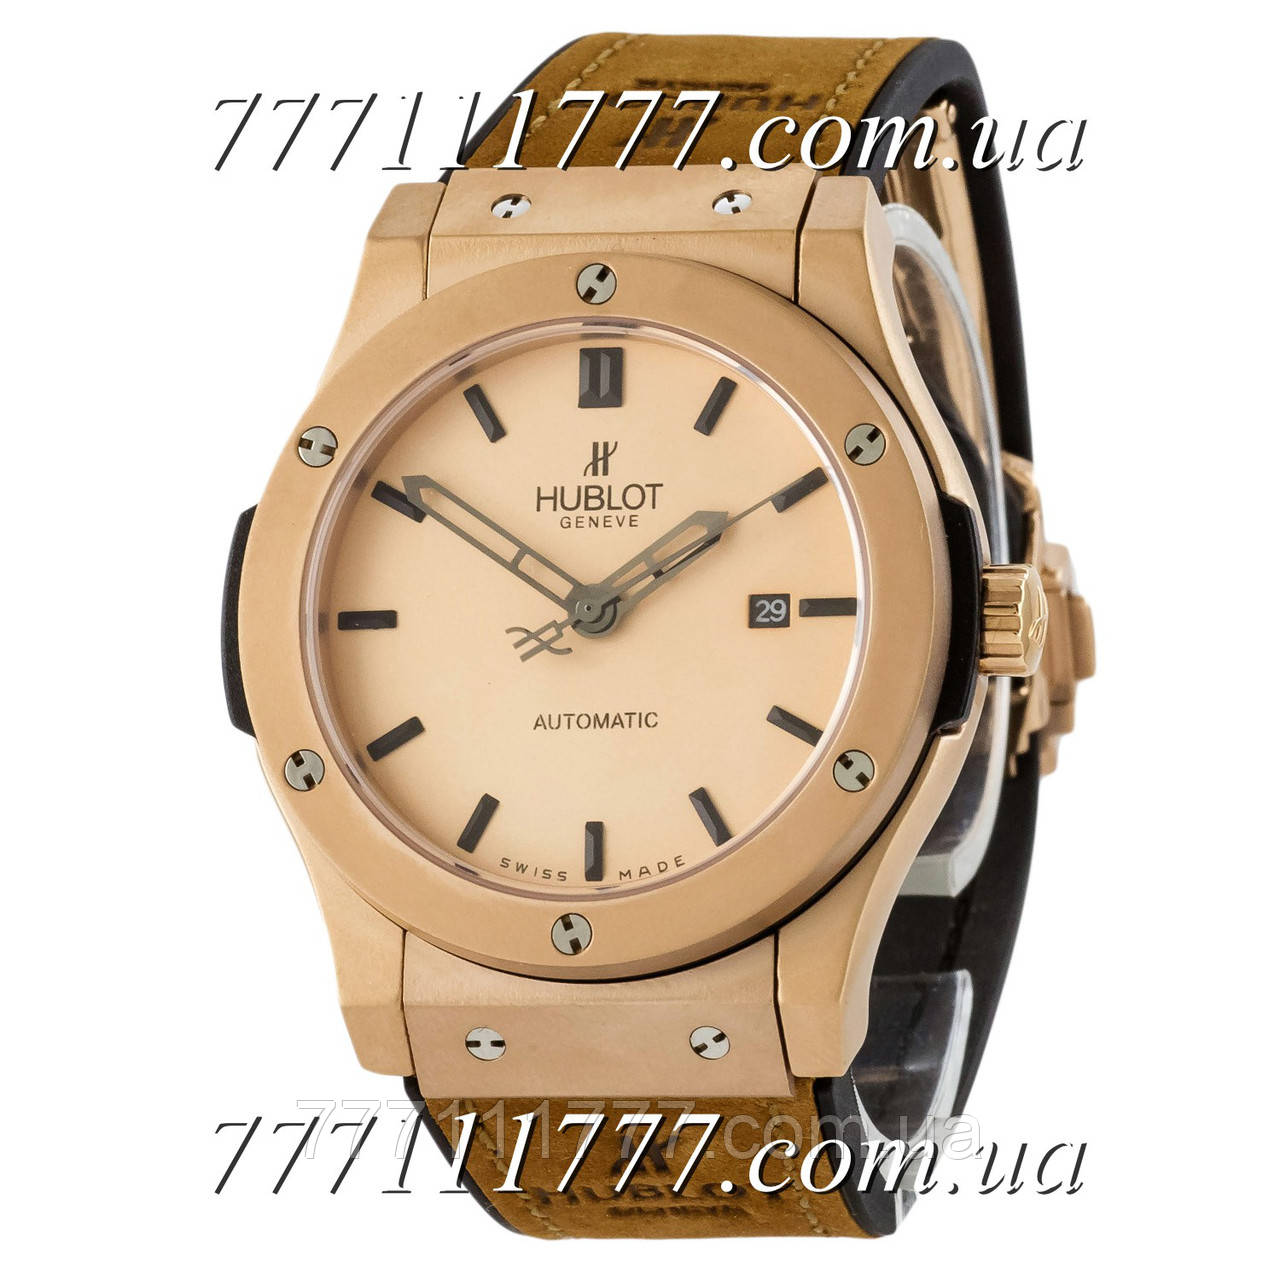 4359387c1a5d Часы мужские наручные Hublot Classic Fusion Automatic AAA Brown-Gold-Mate  гарантия